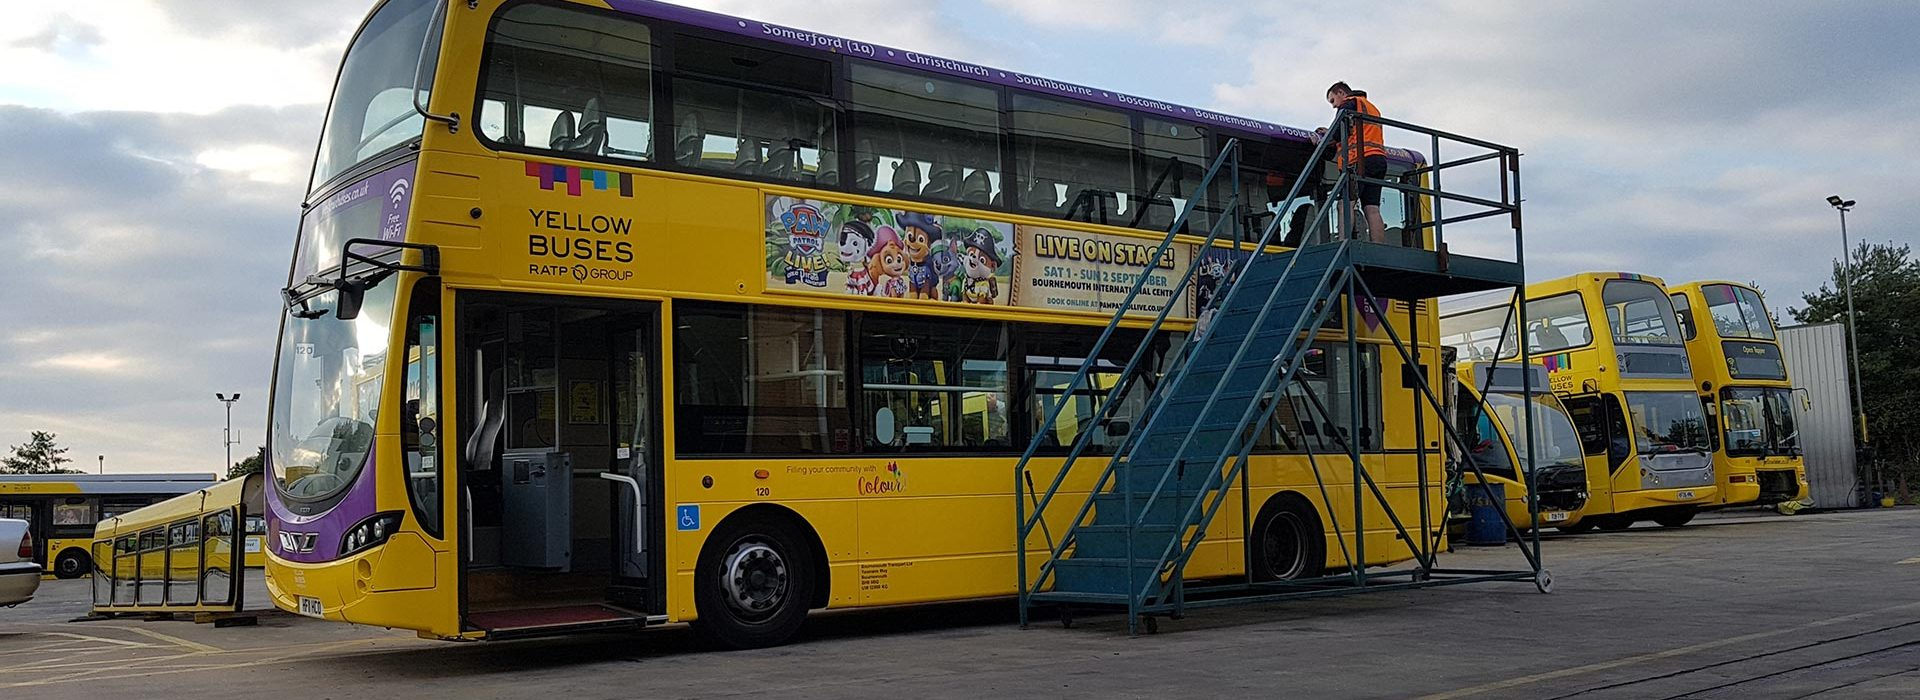 Portfolio - Yellow Buses - Bus Wrap